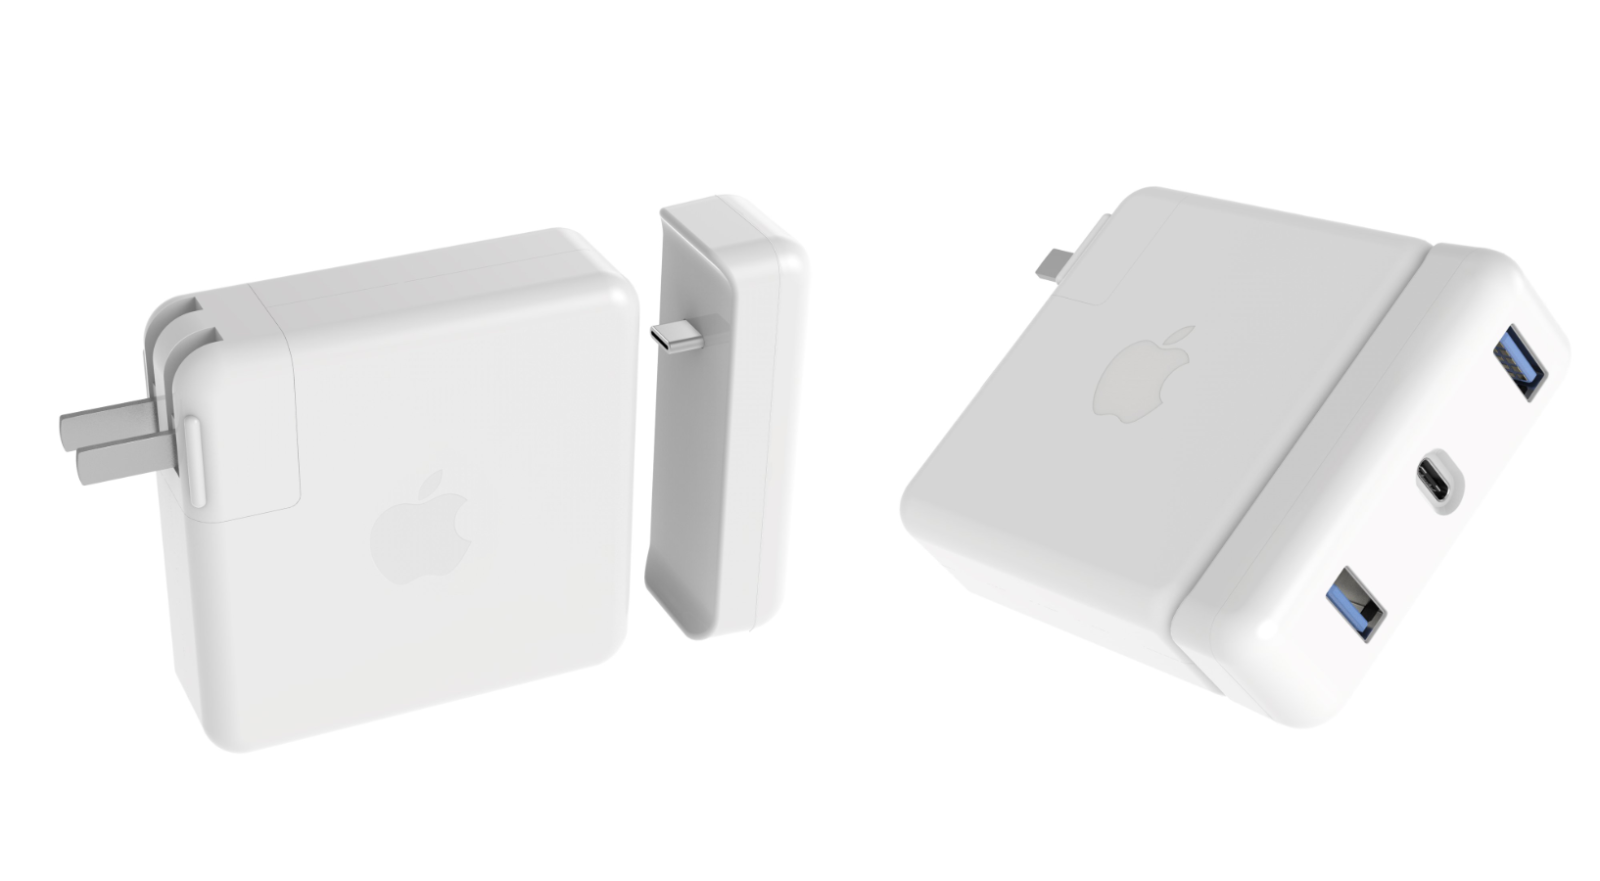 Hypers New Usb C Hubs Attach Directly To Macbook Pros Power Adapter